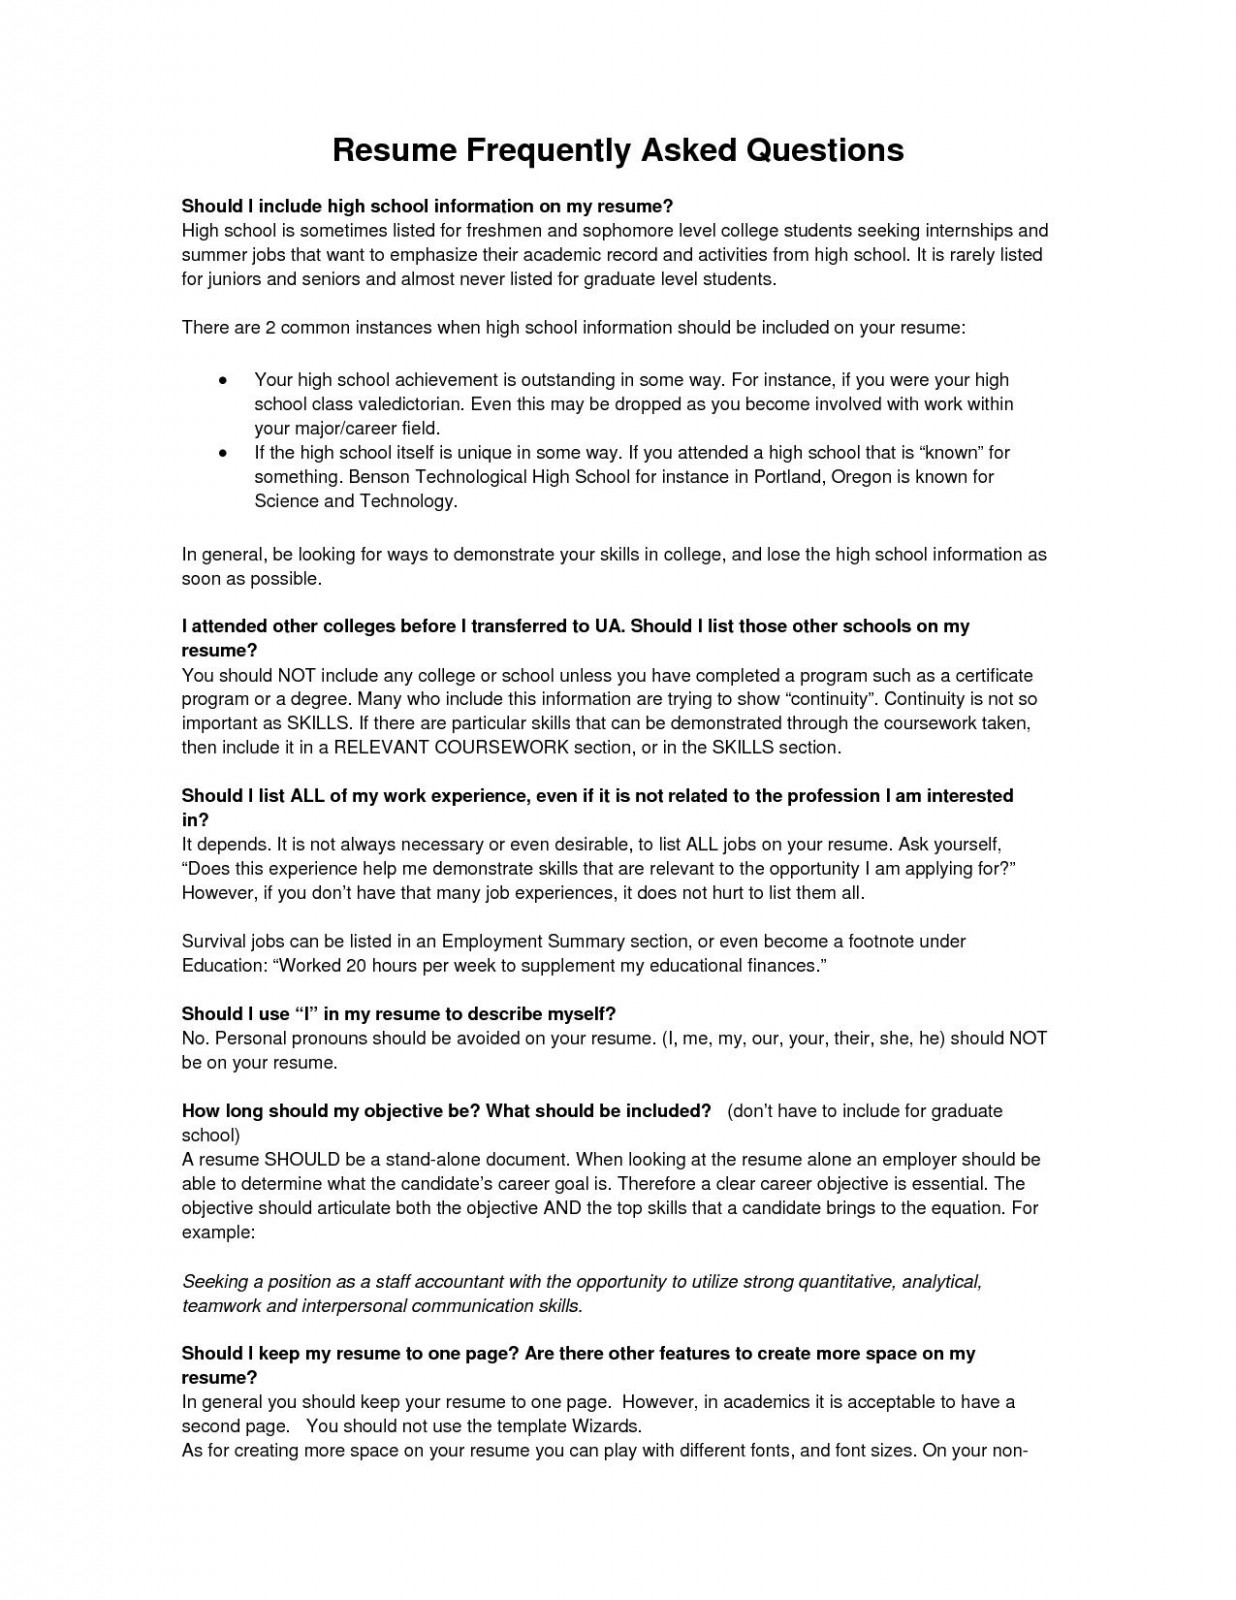 Grad School Resume - Greatest Resume or Cv for Graduate School Meant for Fresher Job Cv